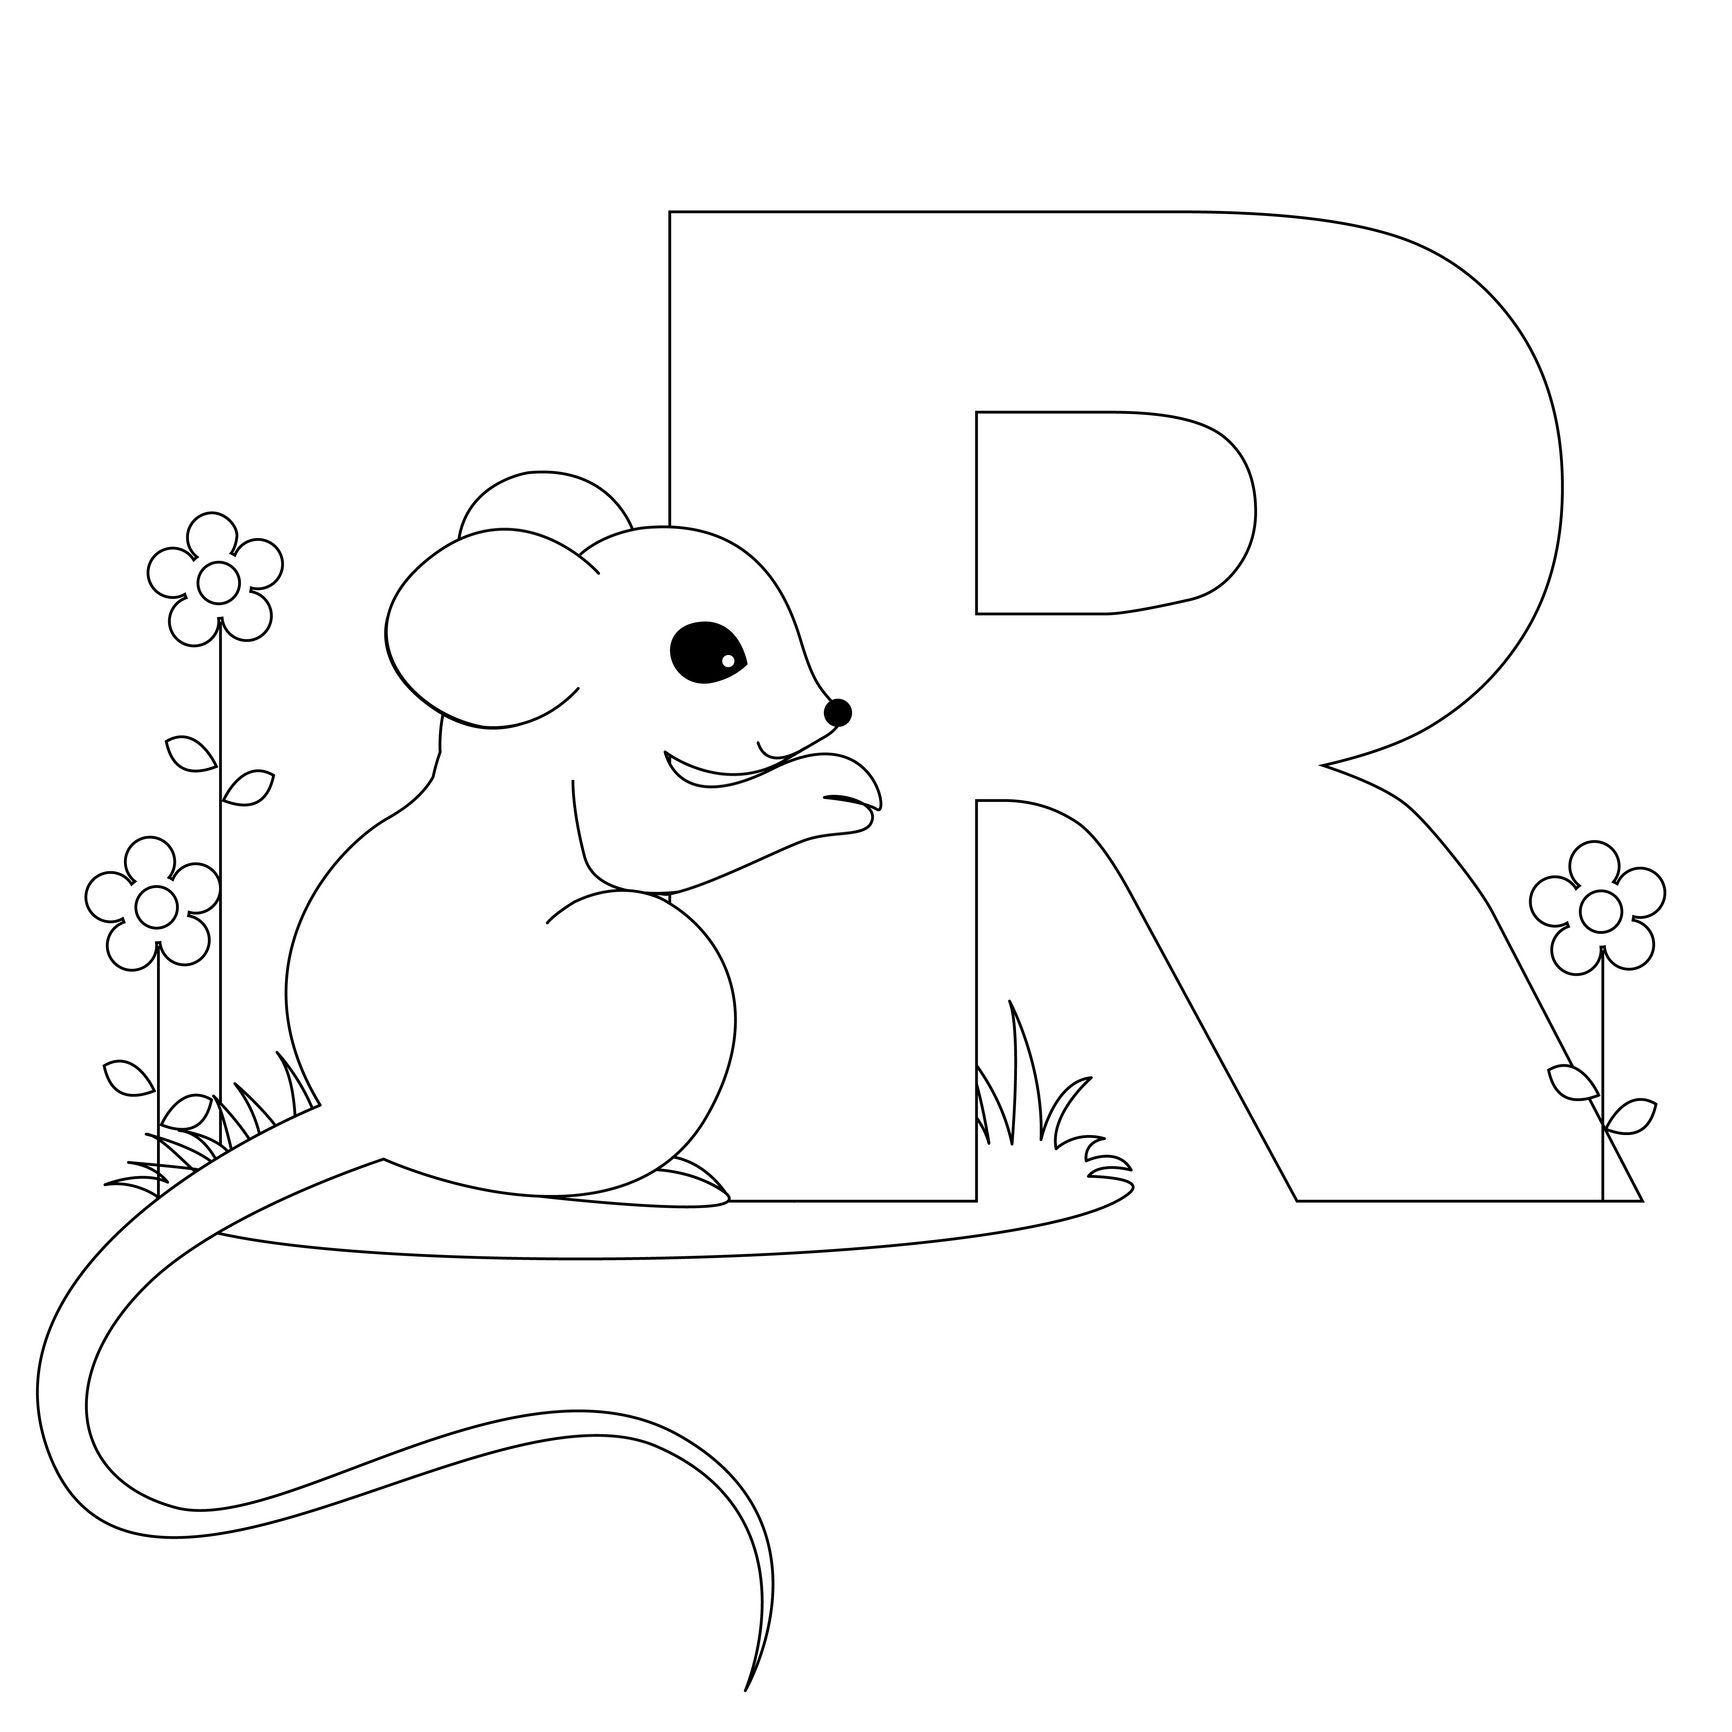 Alphabet pages for coloring book - Animal Alphabet Letter R Is For Rat